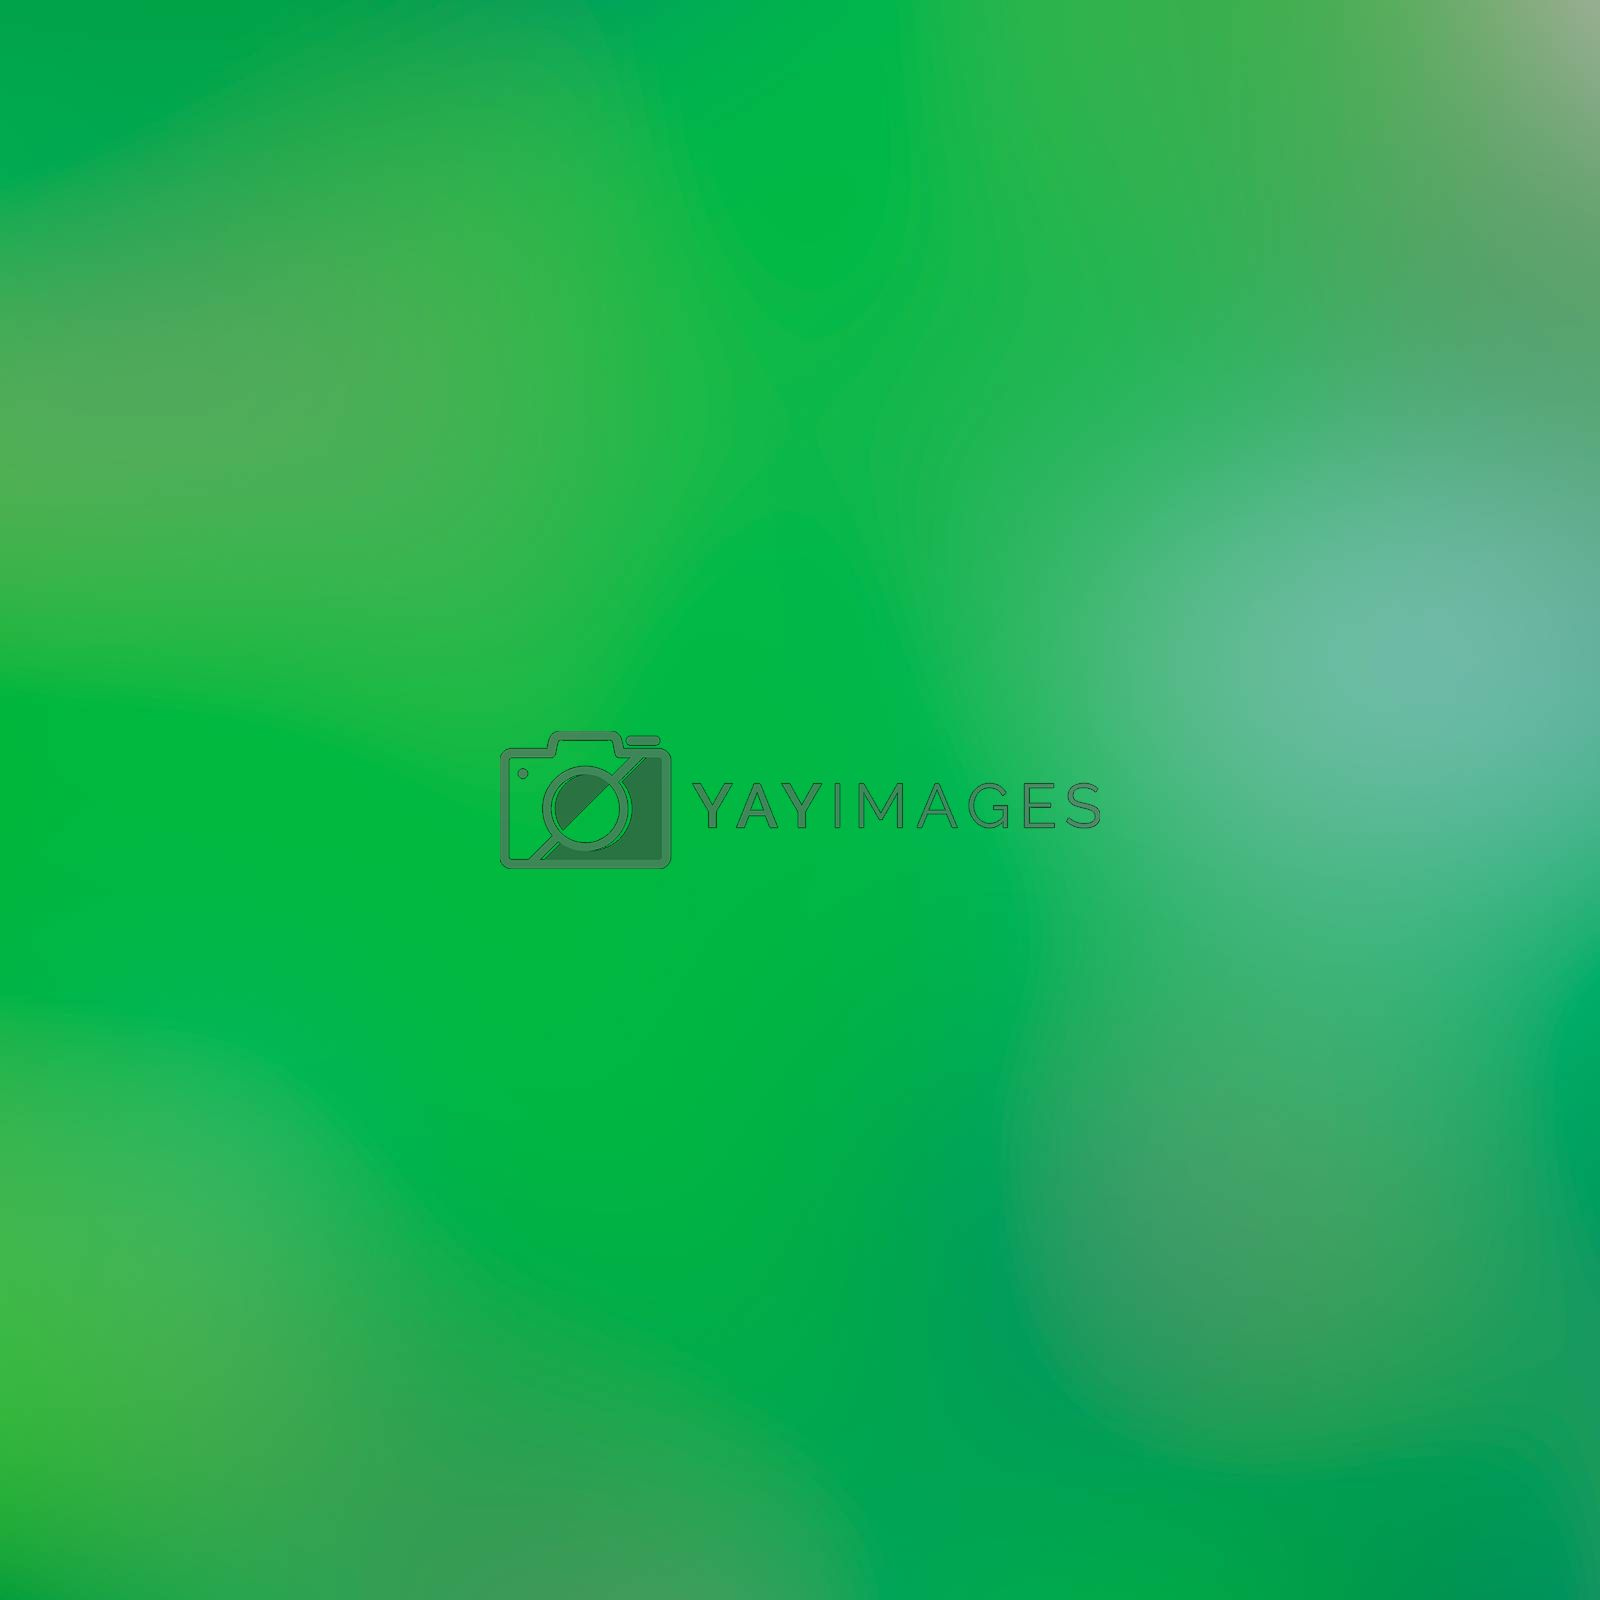 Abstract green nature soft blurred background. Canvas for any project